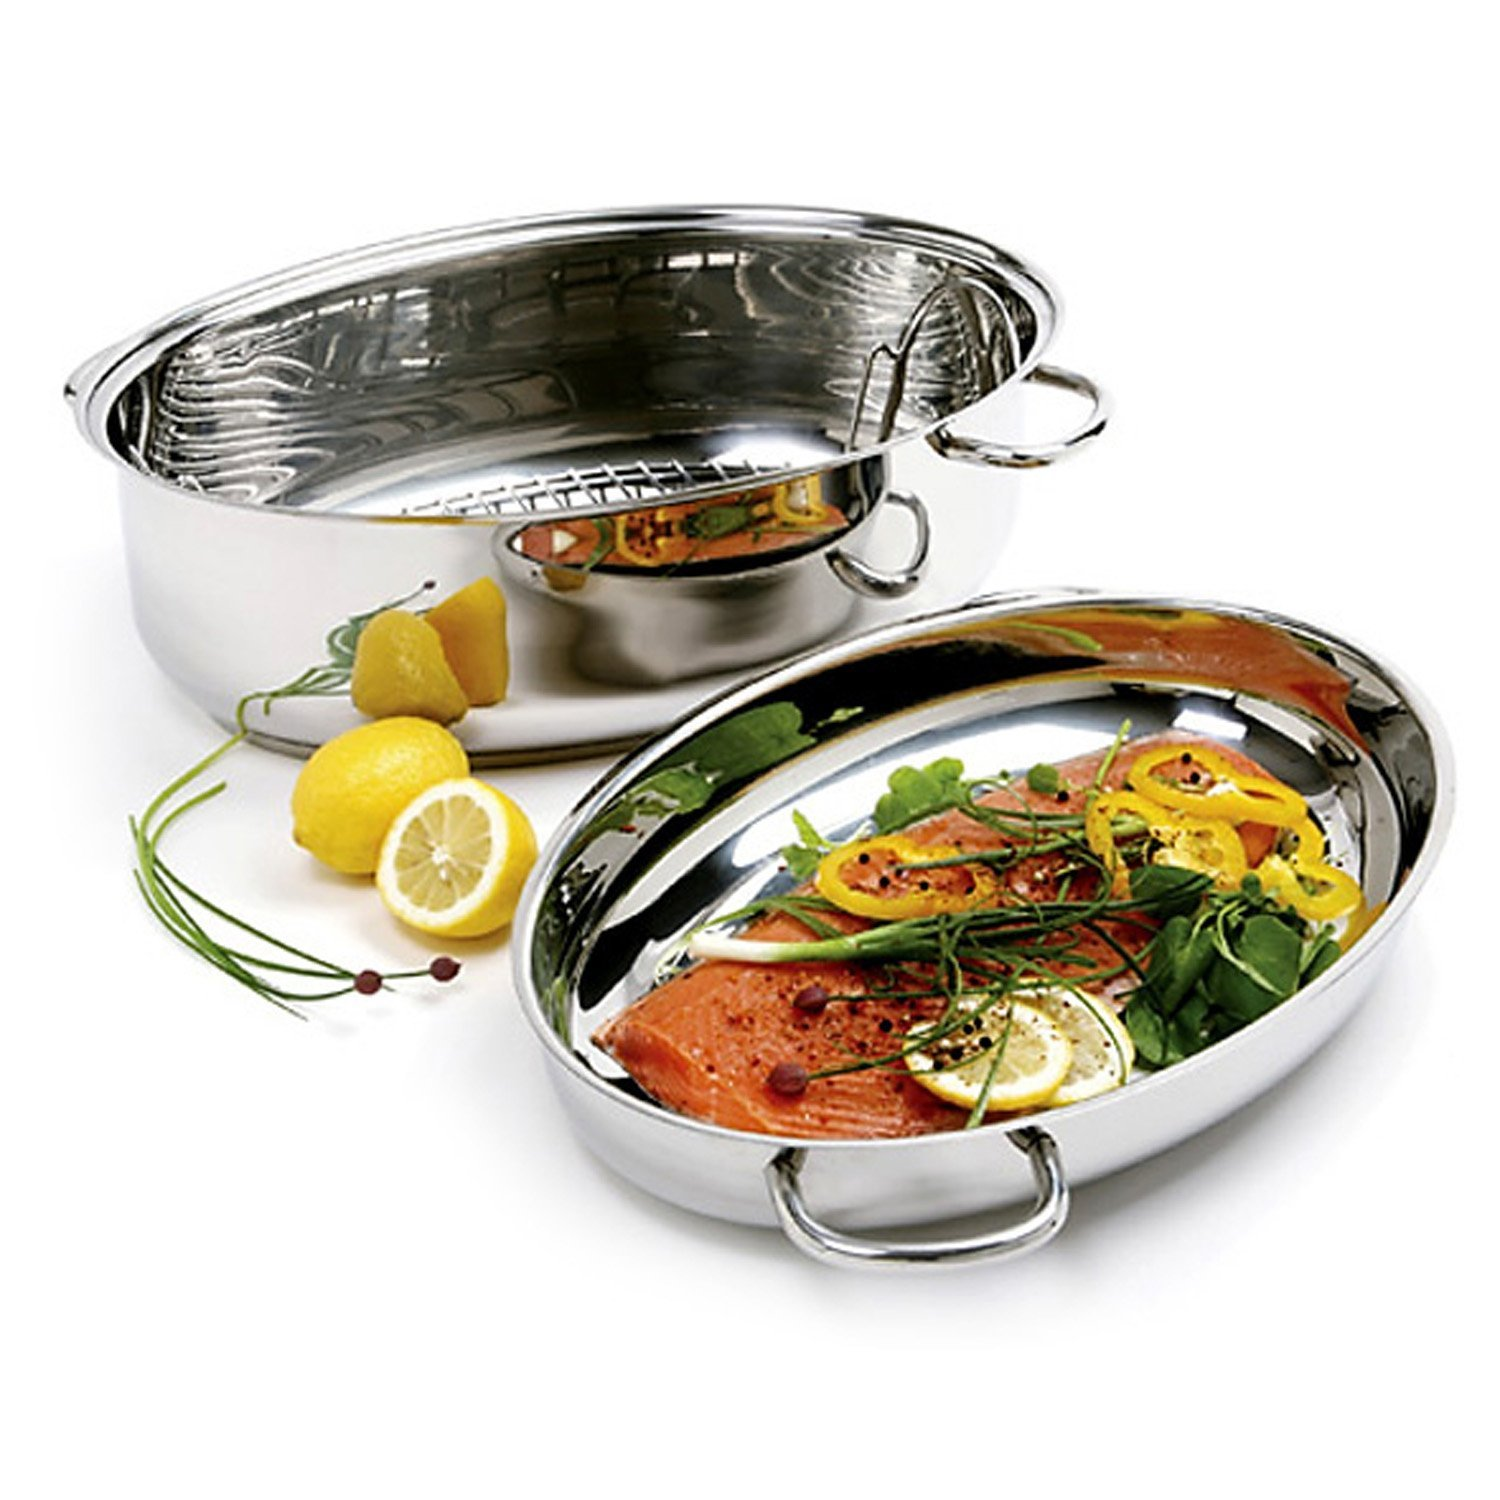 NORPRO 8 QT STAINLESS STEEL ROASTER